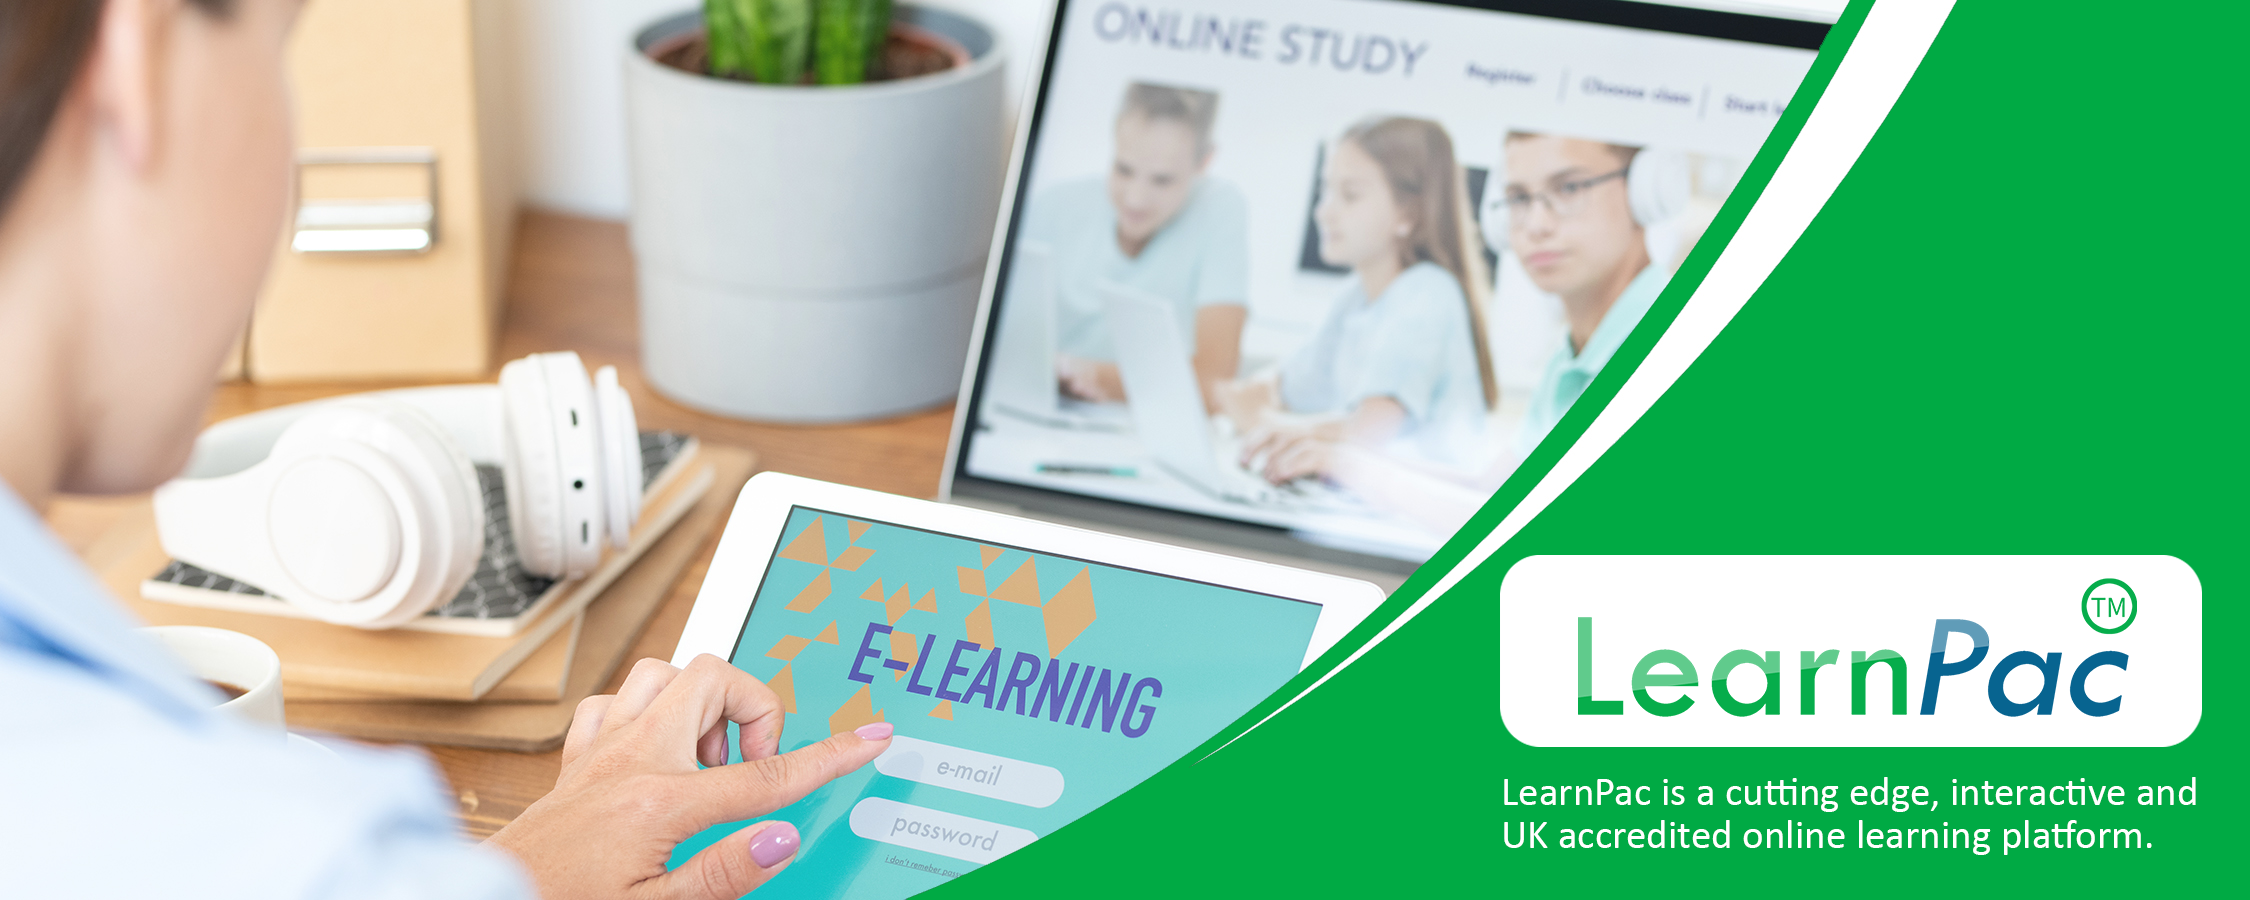 Sharing Calendars - Online Learning Courses - E-Learning Courses - LearnPac Systems UK --